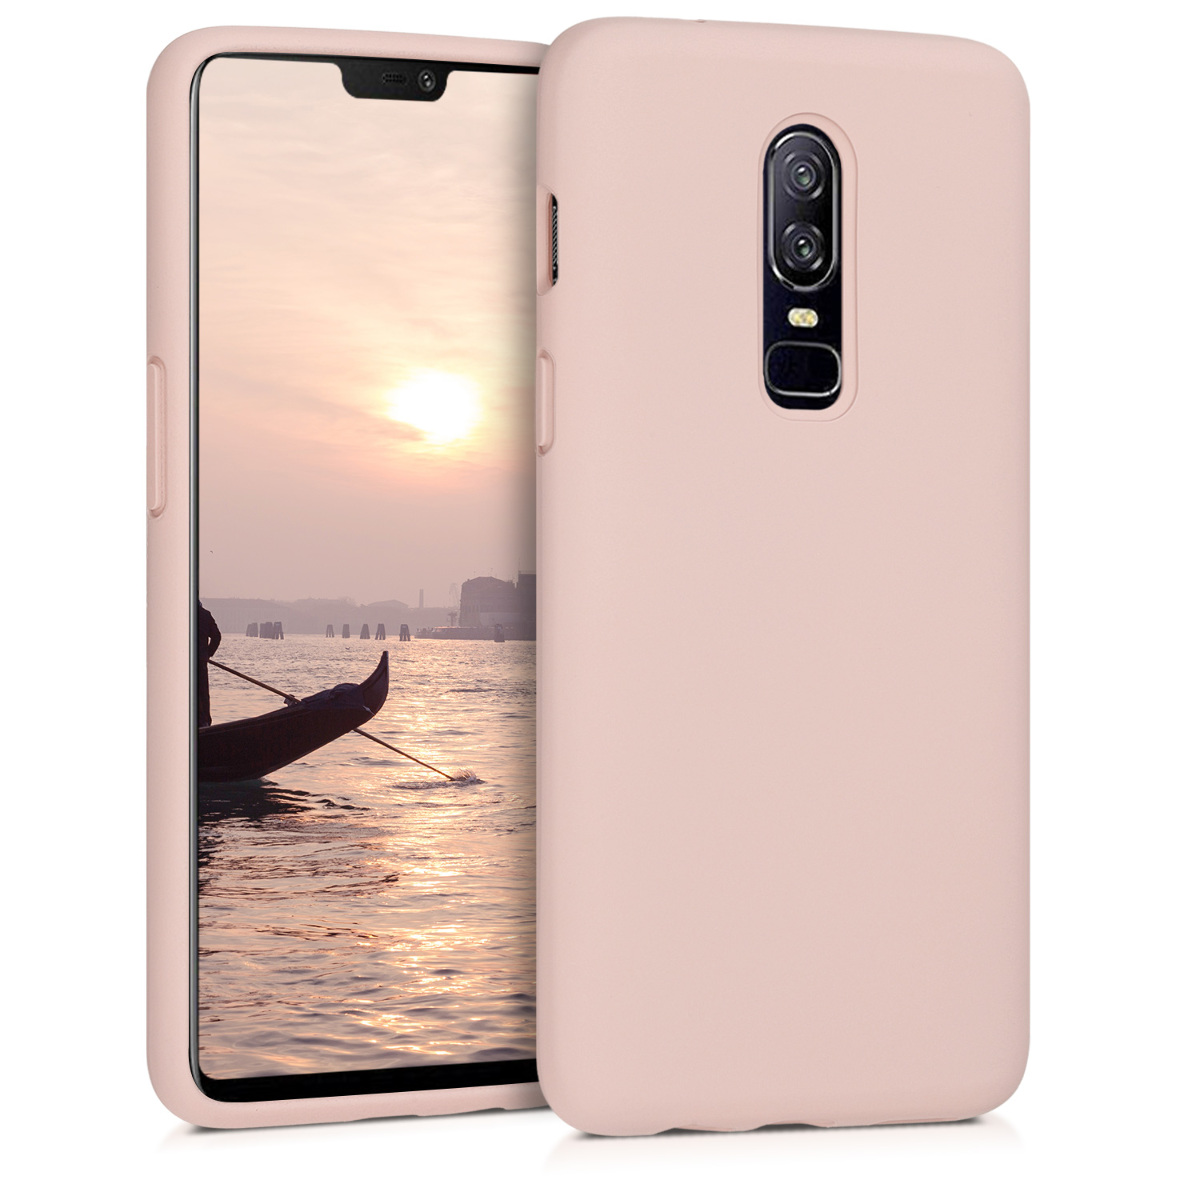 KW Θήκη Σιλικόνης OnePlus 6 - Soft Flexible Rubber Protective Cover - Antique Pink - (46122.10)